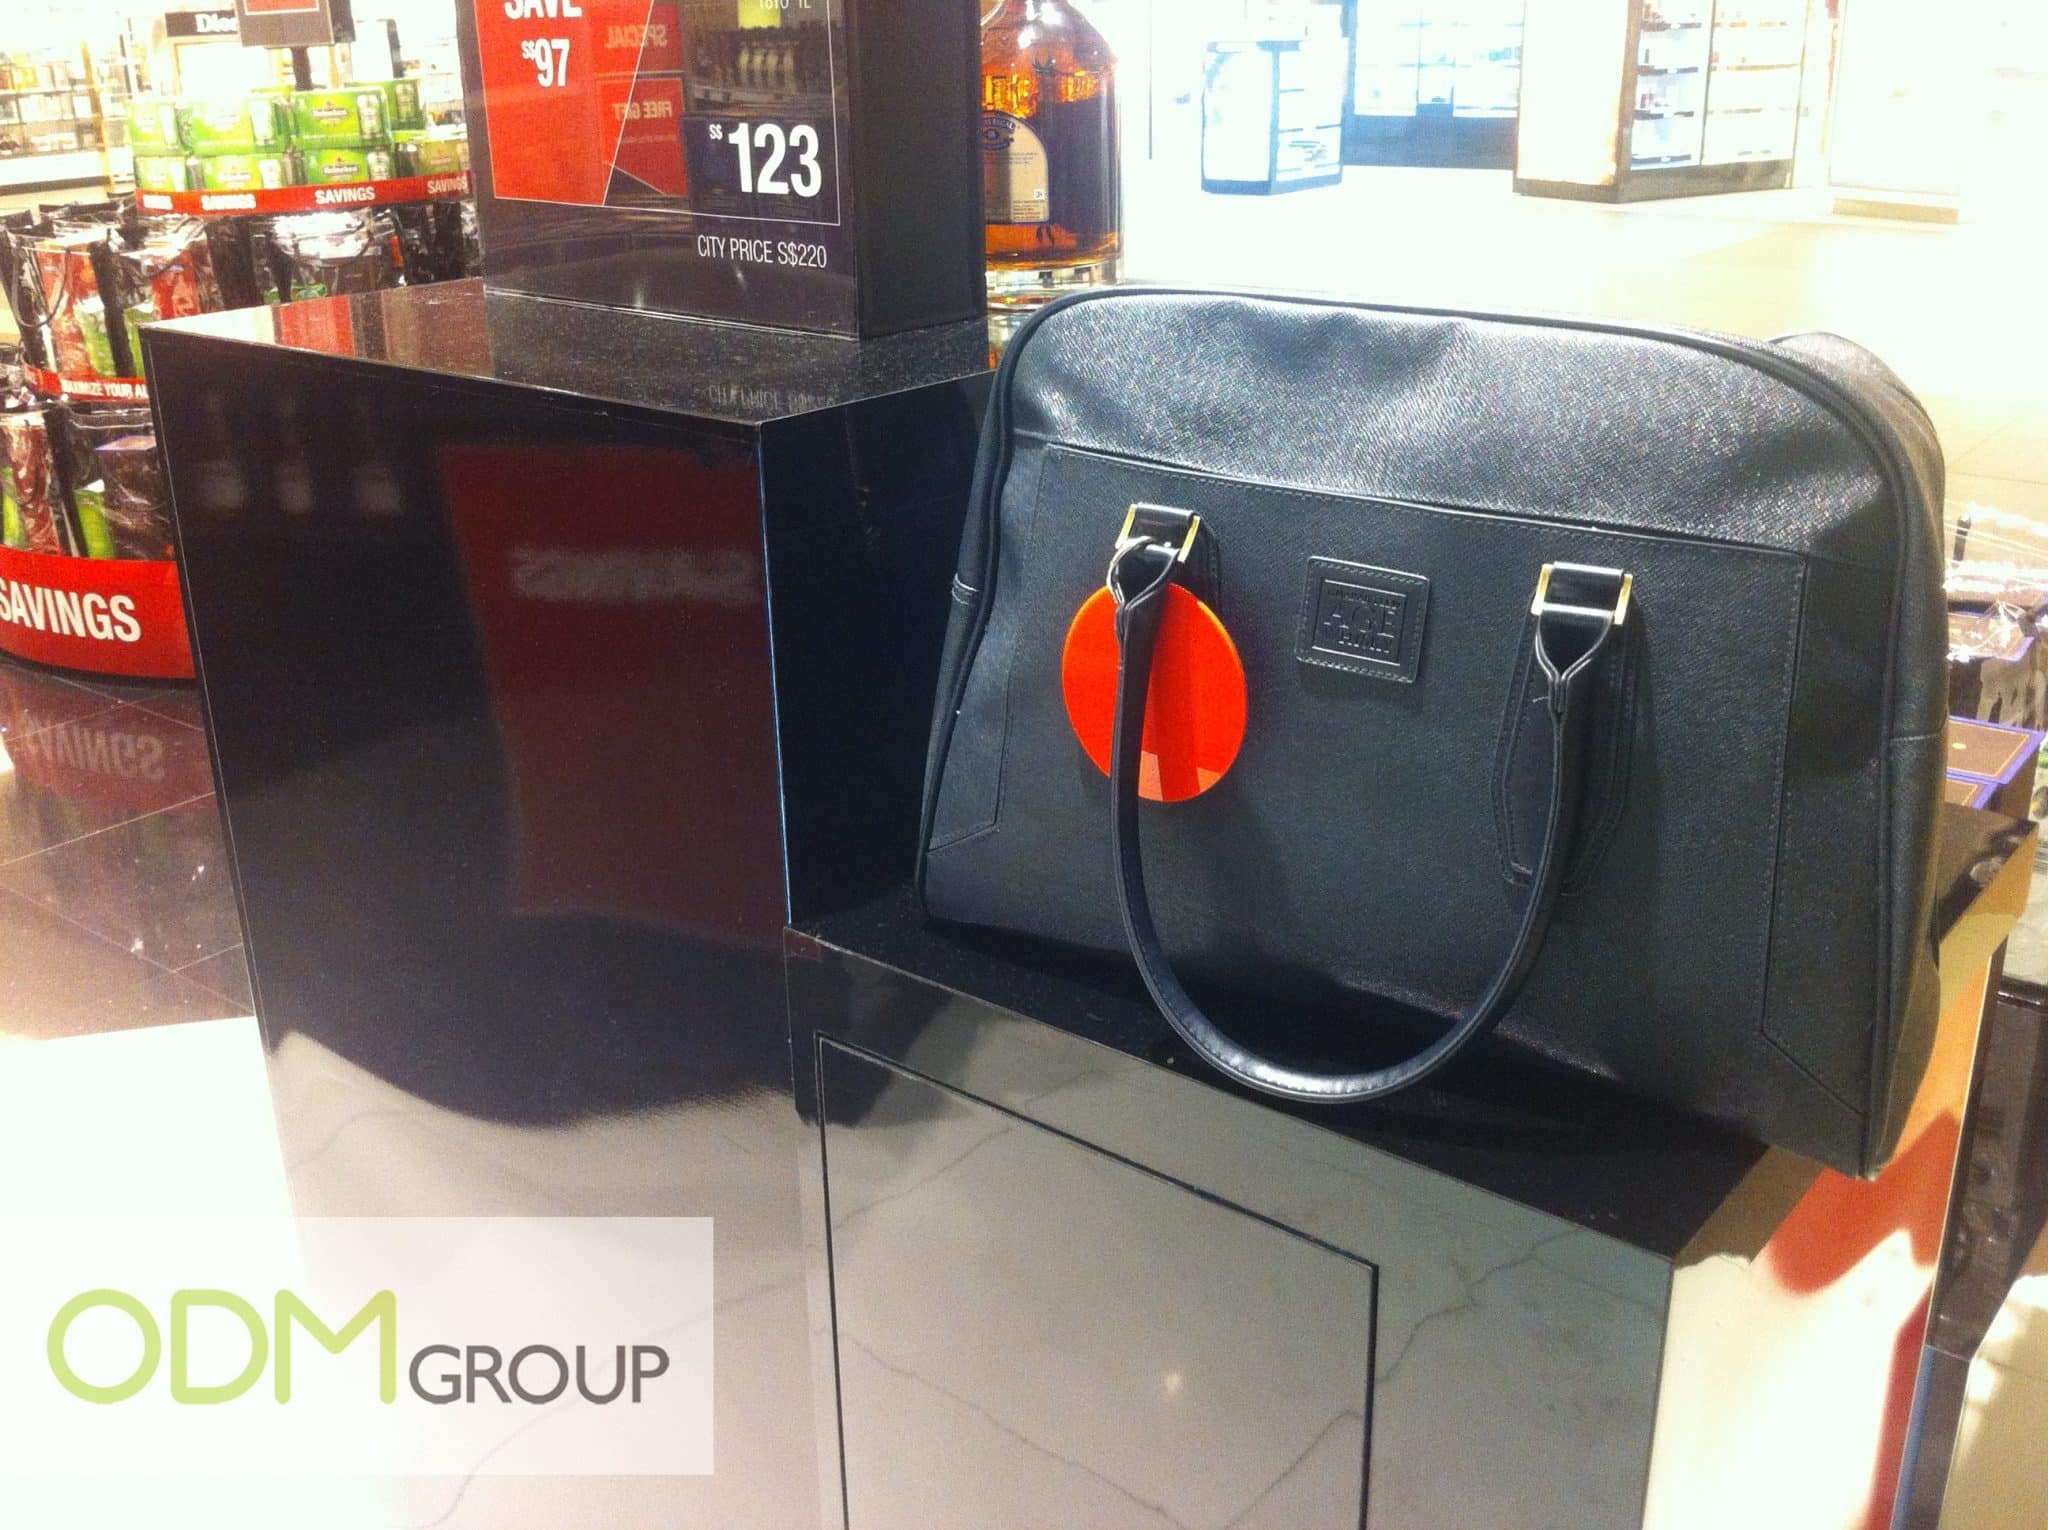 The Most Popular Gwp In Duty Free Stores